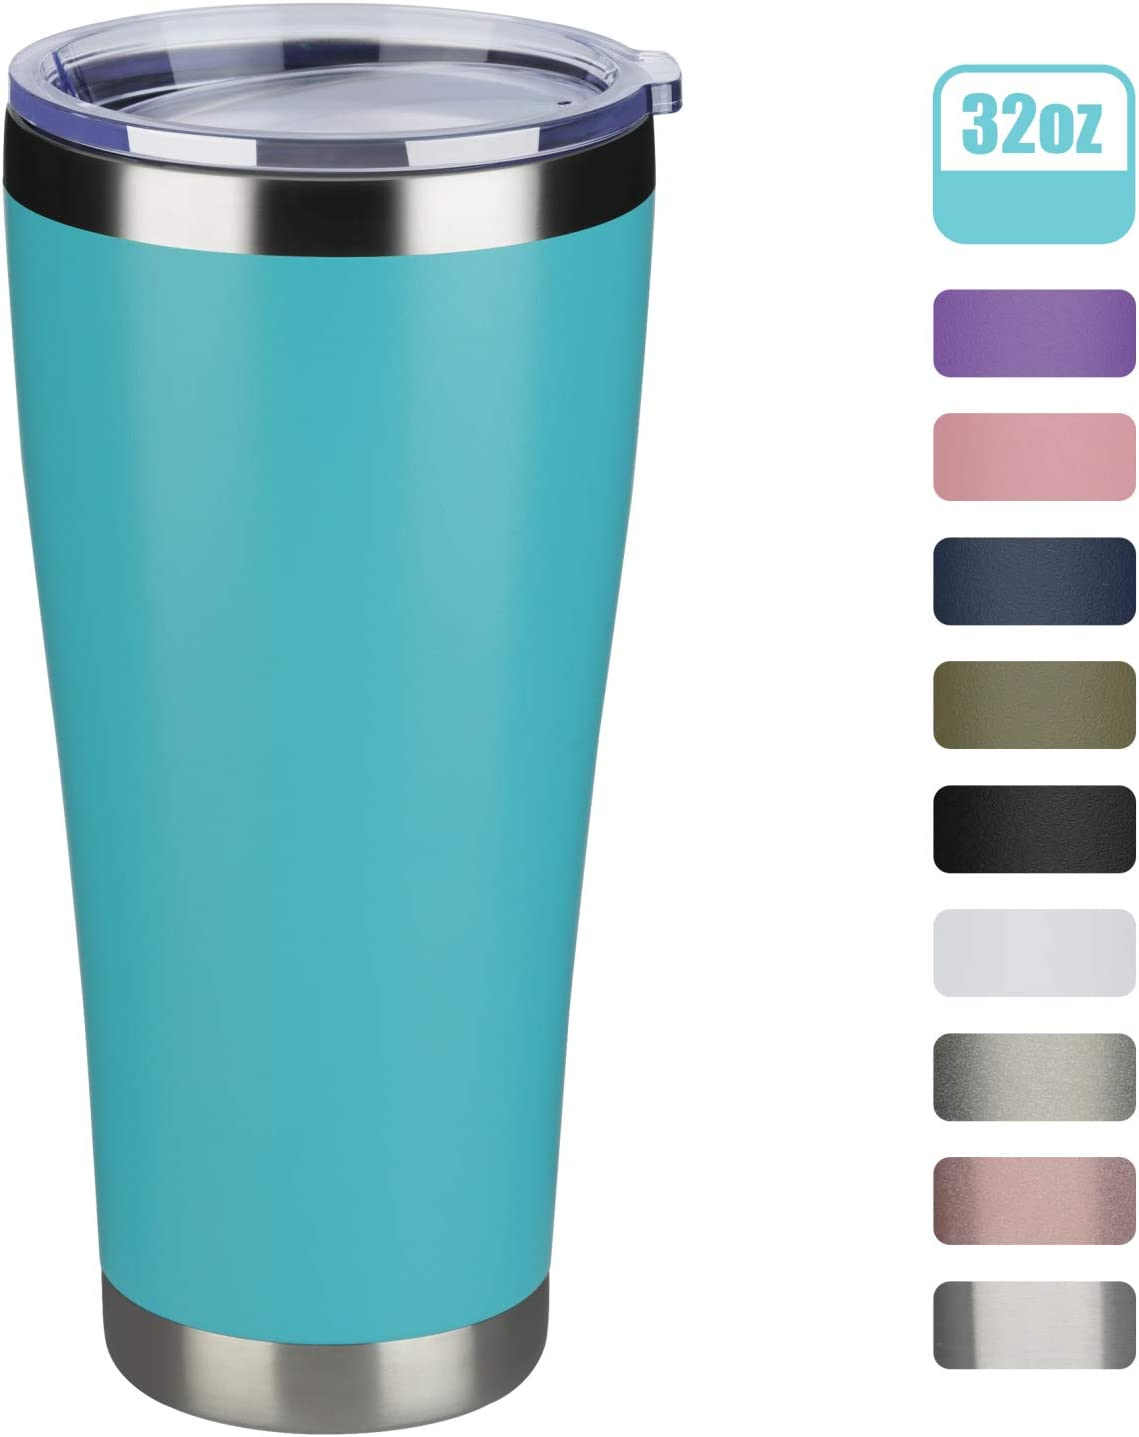 MEWAY 32oz Tumbler Double Wall Vacuum Insulated Travel Mug, Stainless Steel Coffee Tumbler with Lid, Durable Powder Coated Coffee Cup, Keep Drinks Cold & Hot (Light Blue, 1 pack)